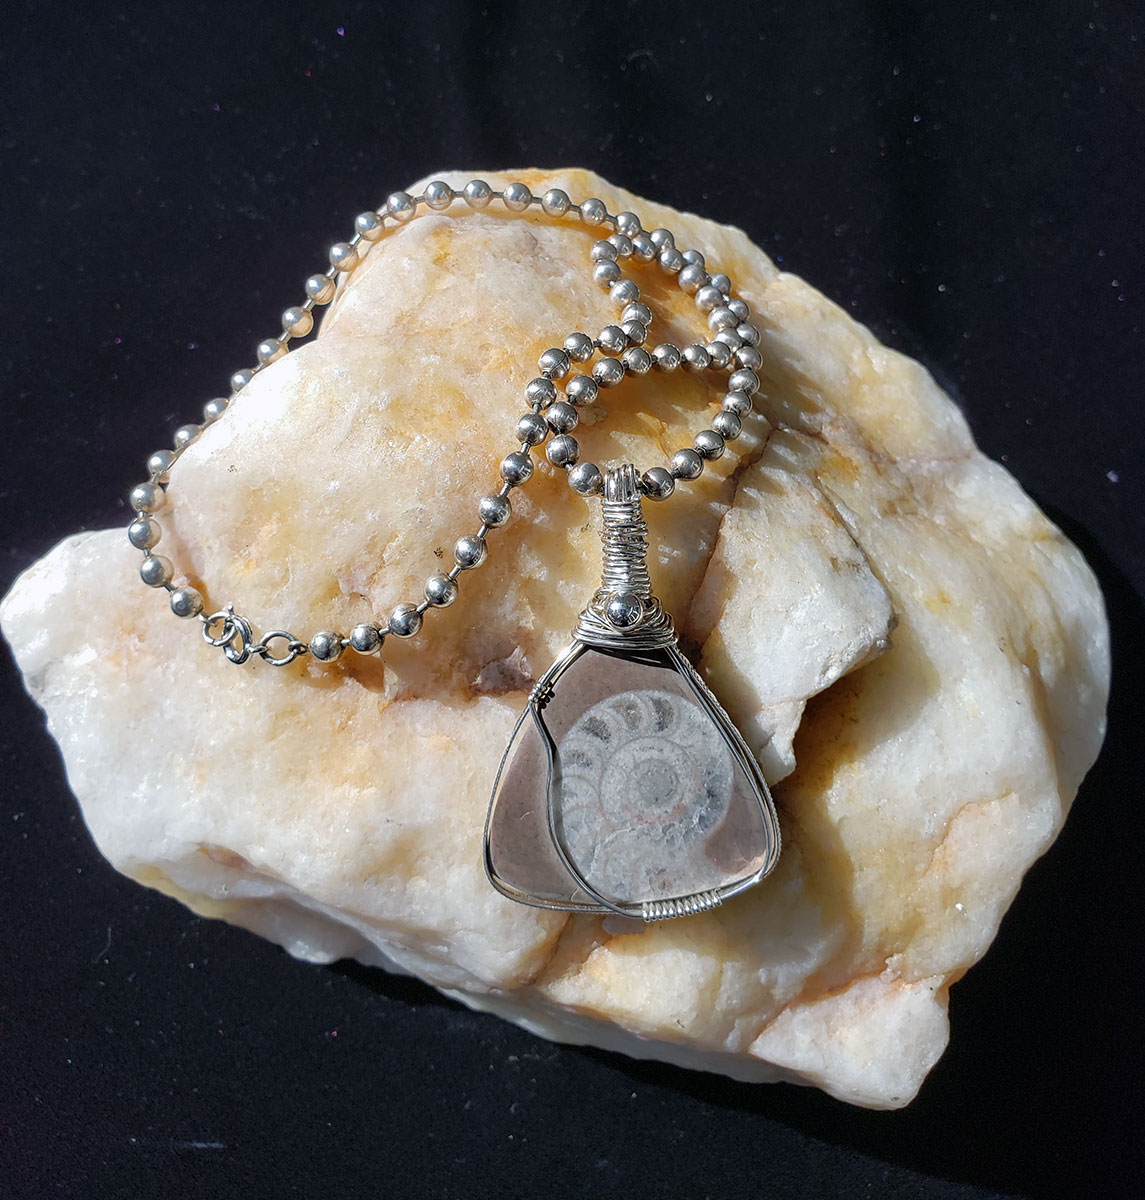 Sterling Silver Wrapped Ammonite Fossil by Tina Acciavatti